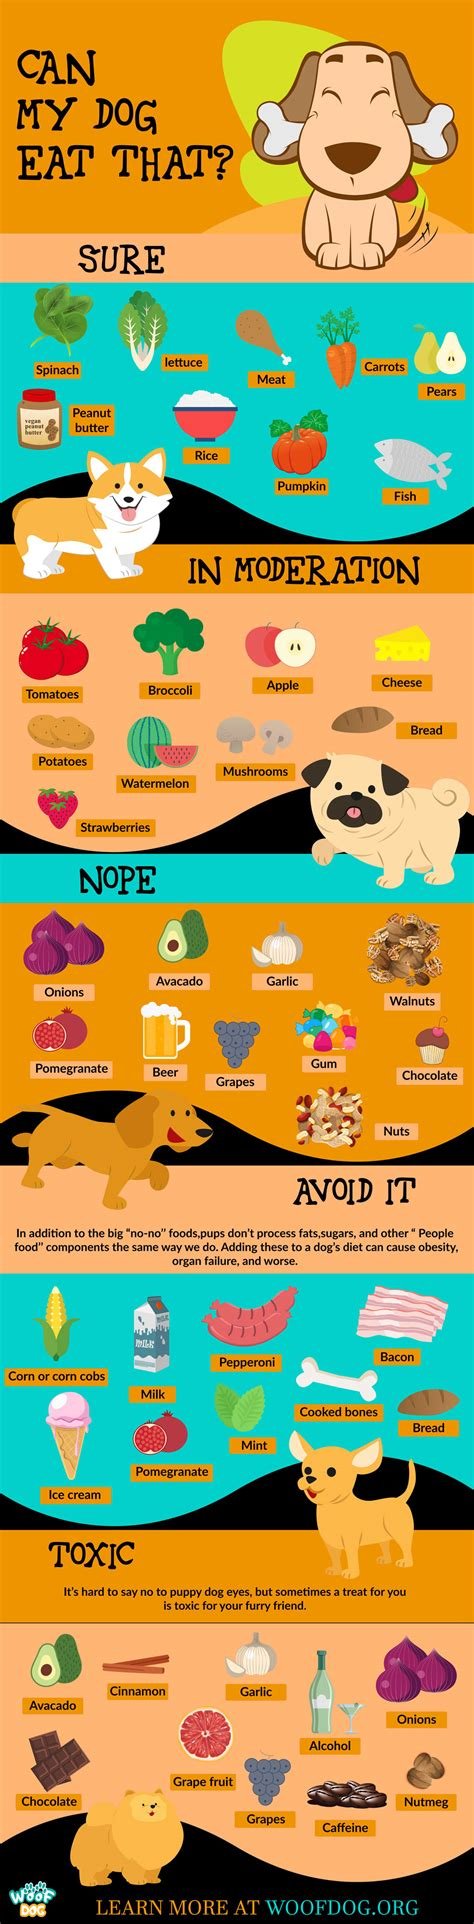 what foods can t dogs eat 30 human foods dogs can and can t eat 11 toxic and dangerous